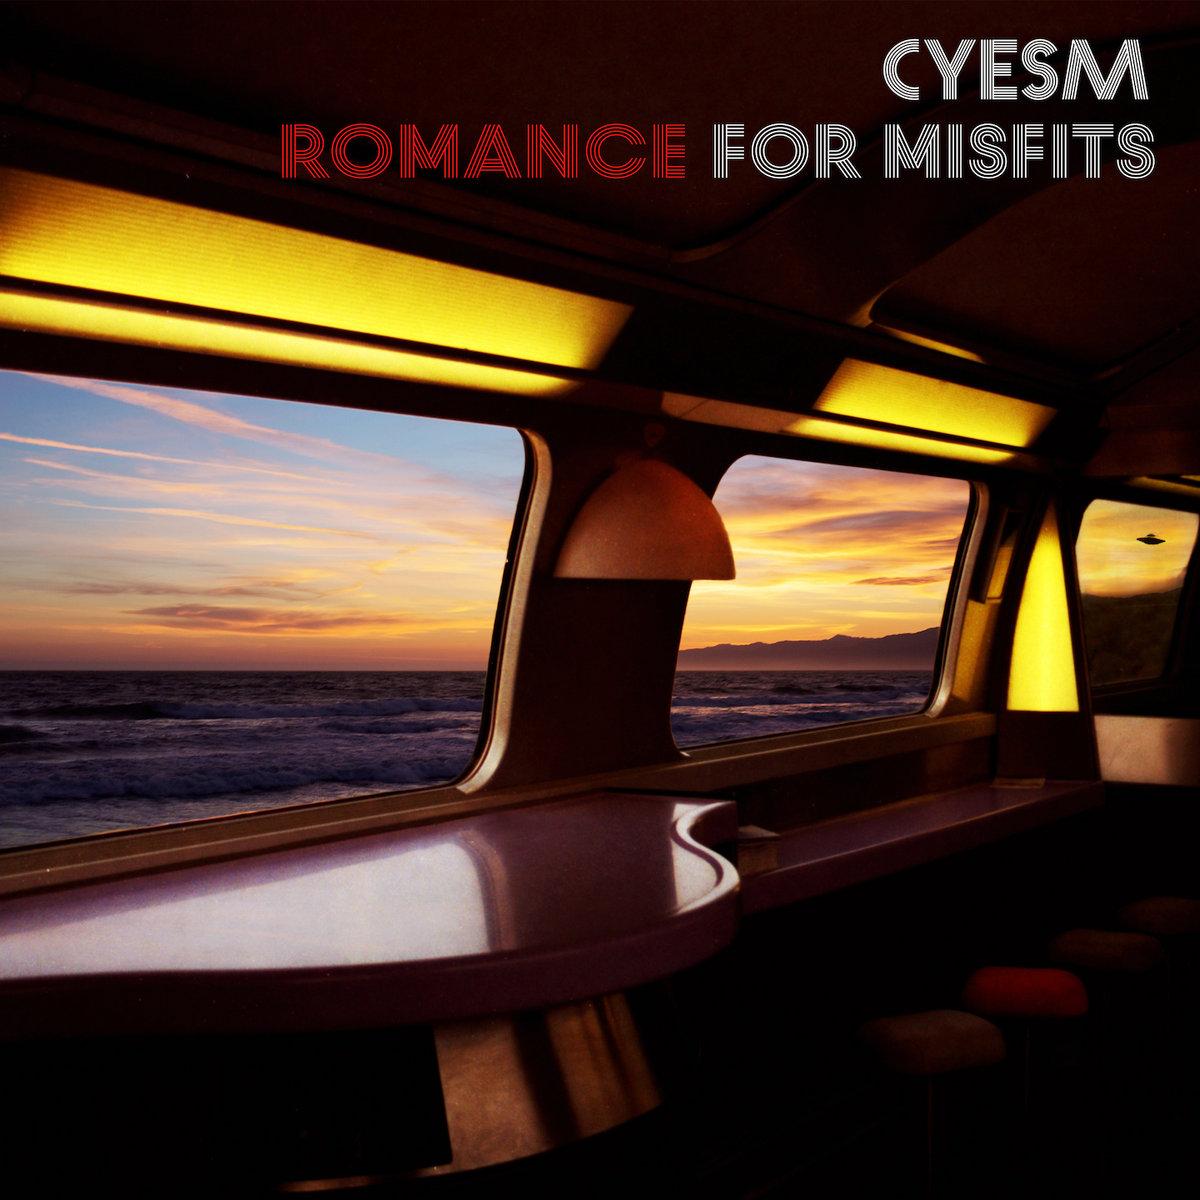 Cyesm - Romance for Misfits (2016)